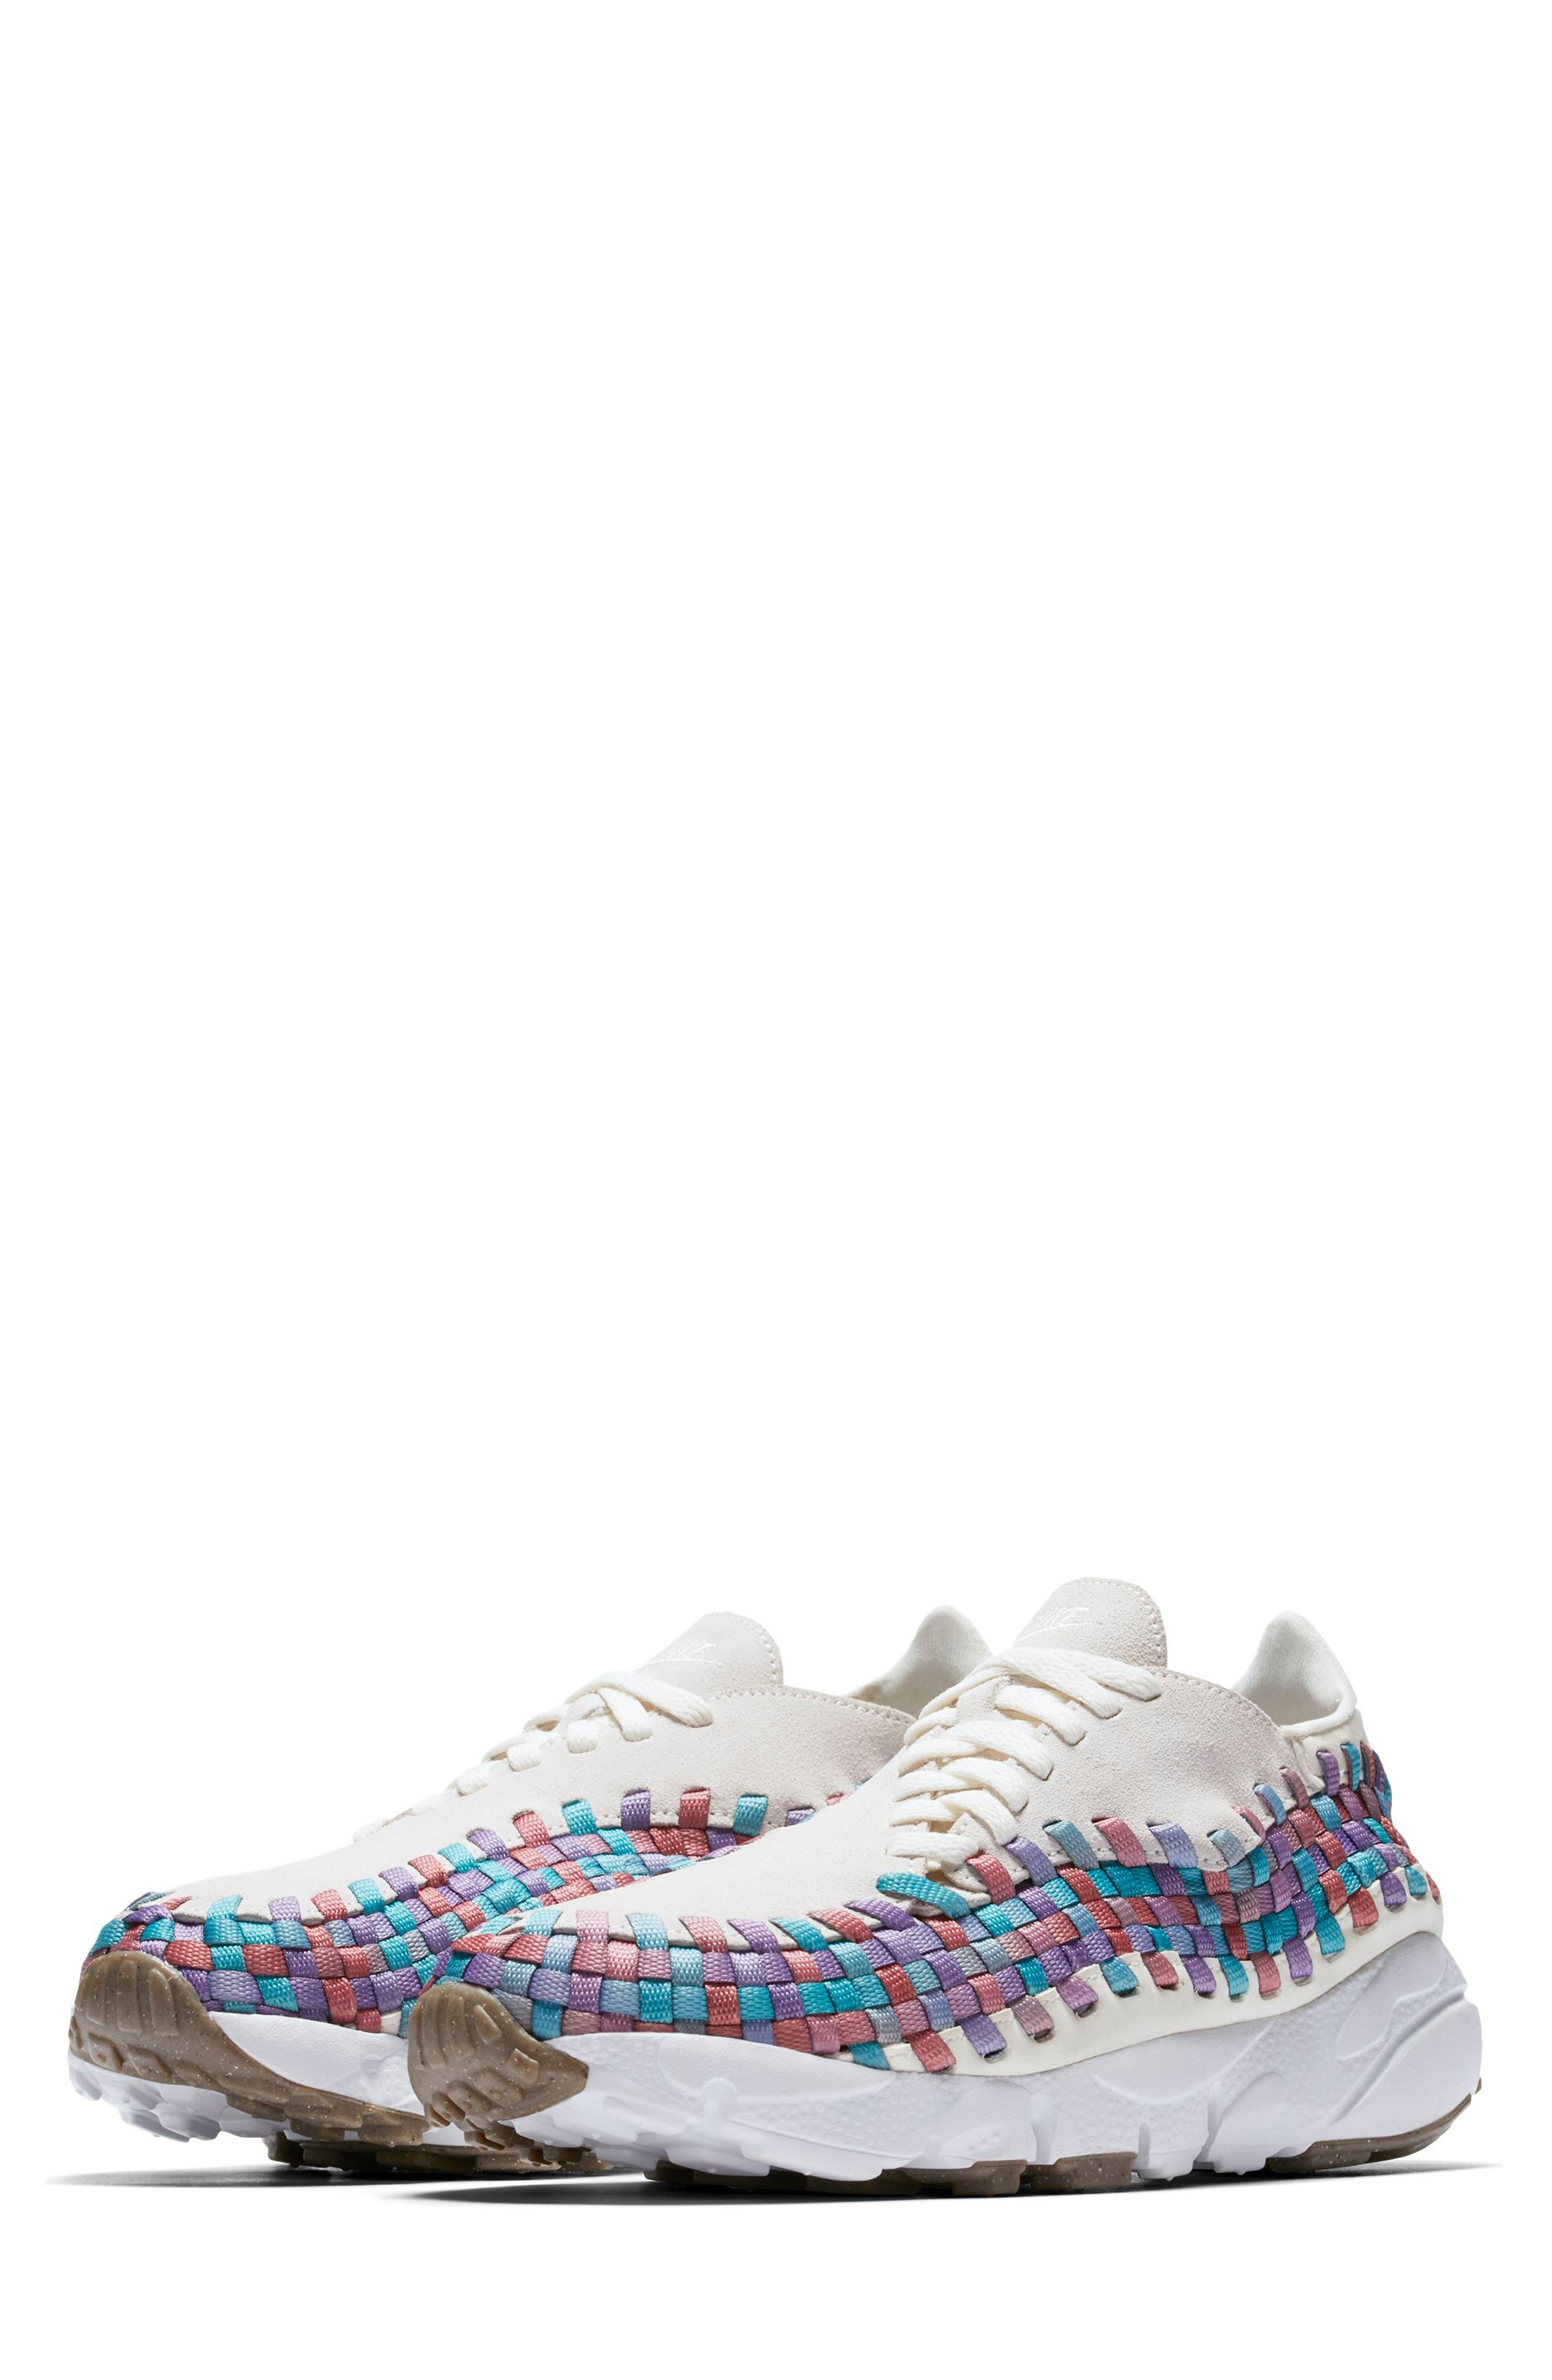 Alternate Image 1 Selected - Nike Air Footscape Woven Sneaker (Women)